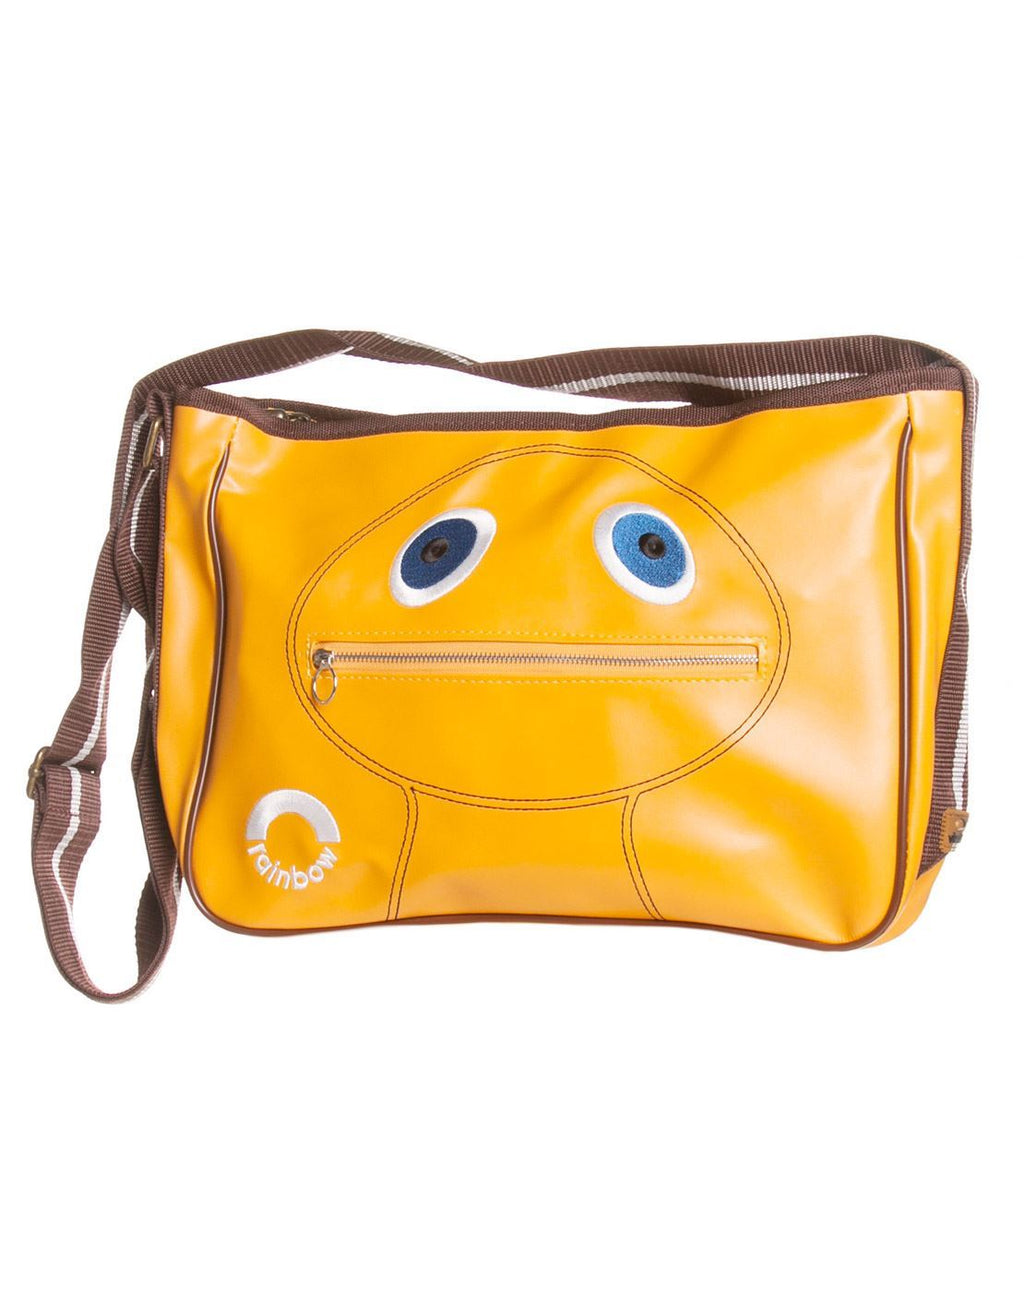 Rainbow Zippy Satchel Bag